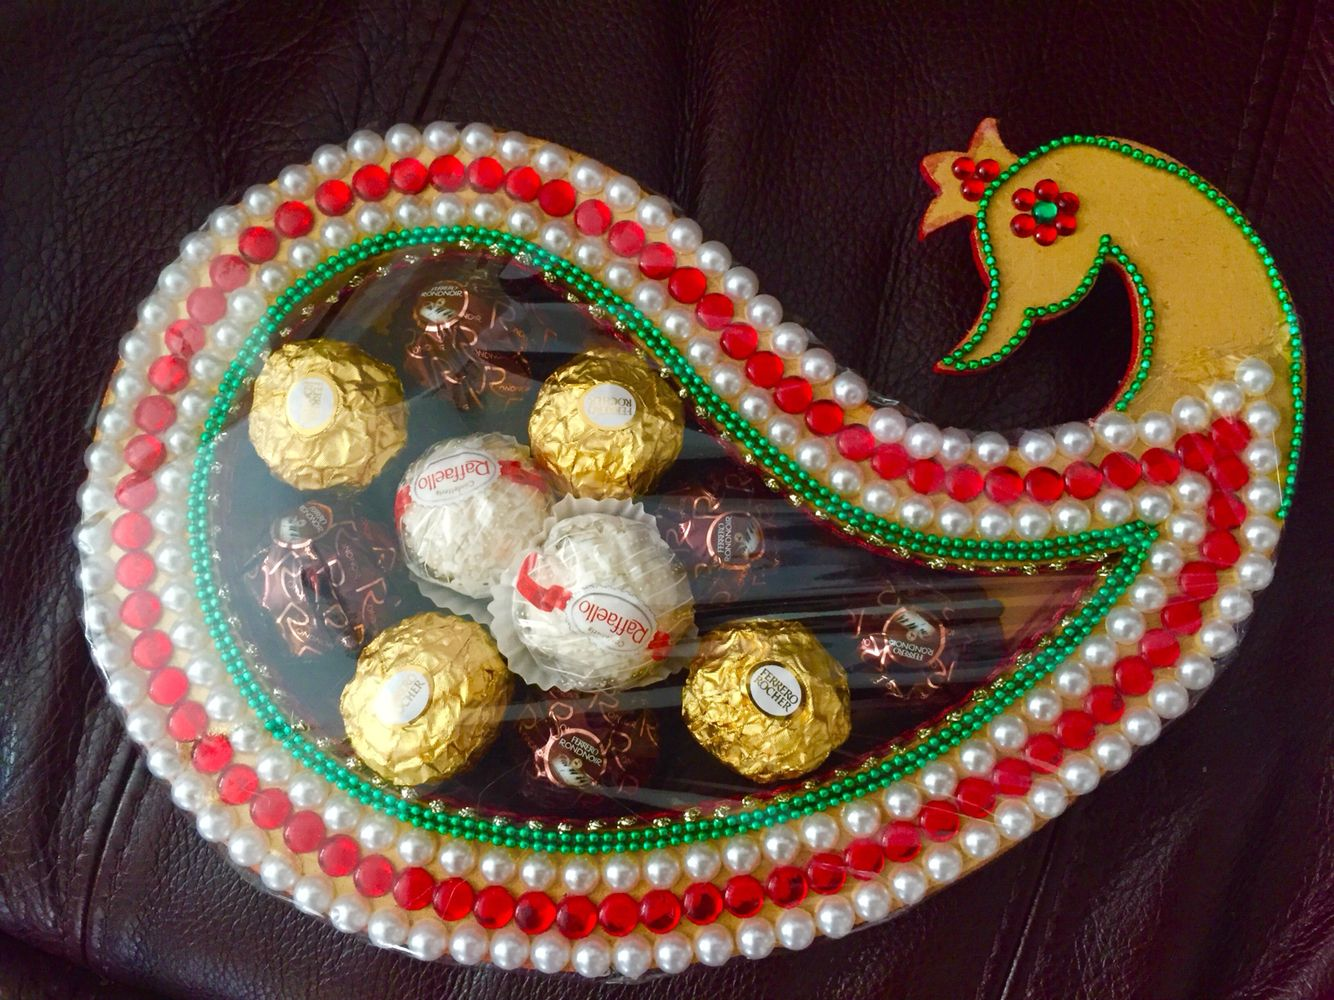 Indian Wedding Tray Decoration Indian Wedding Decor Chocolate Tray  ~Creative Crafts